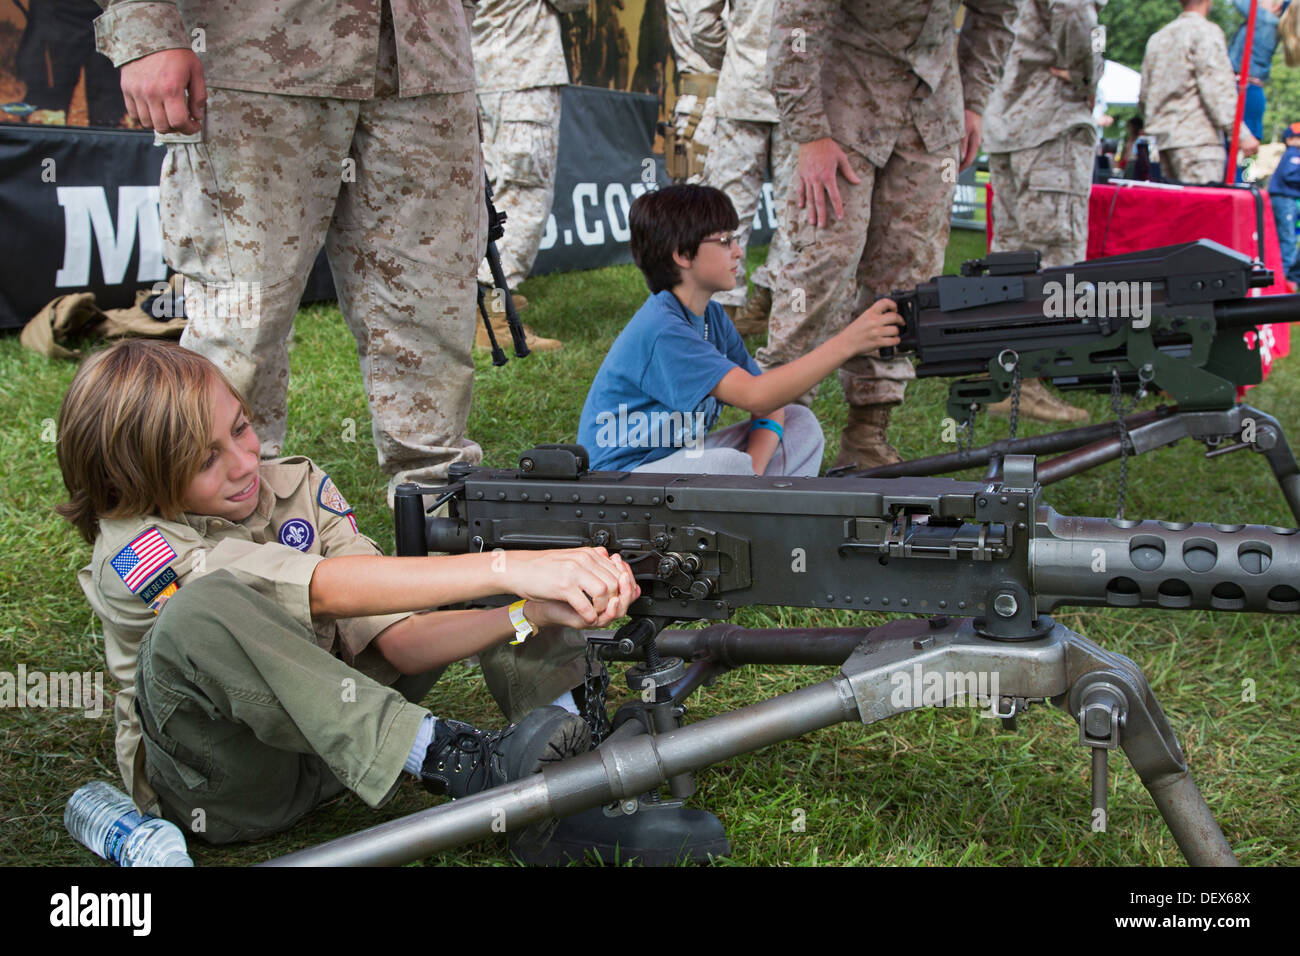 A Boy Scout handles a weapon at a Marine Corps booth during a weekend Scout gathering at a suburban Detroit park. - Stock Image